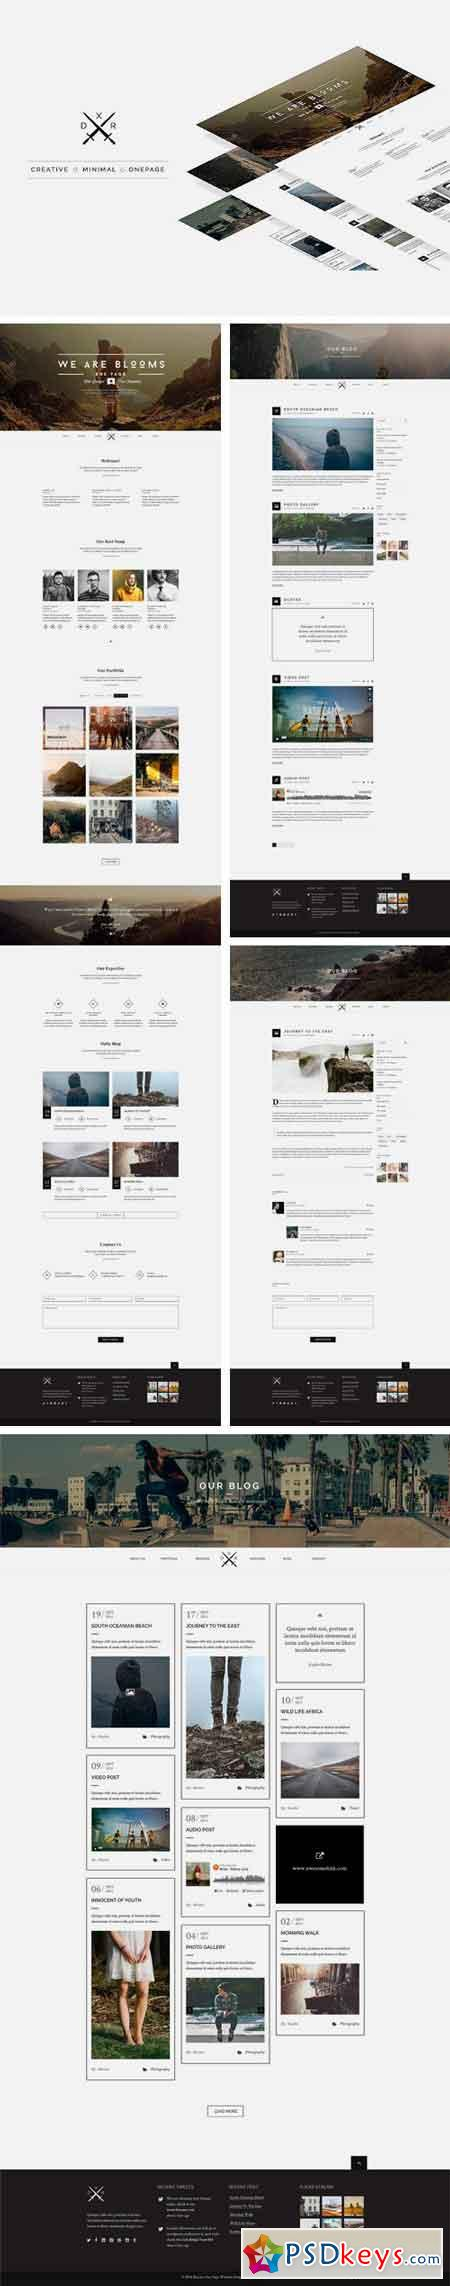 Blooms One Page Psd Web Template Free Download Photoshop - Web template torrent